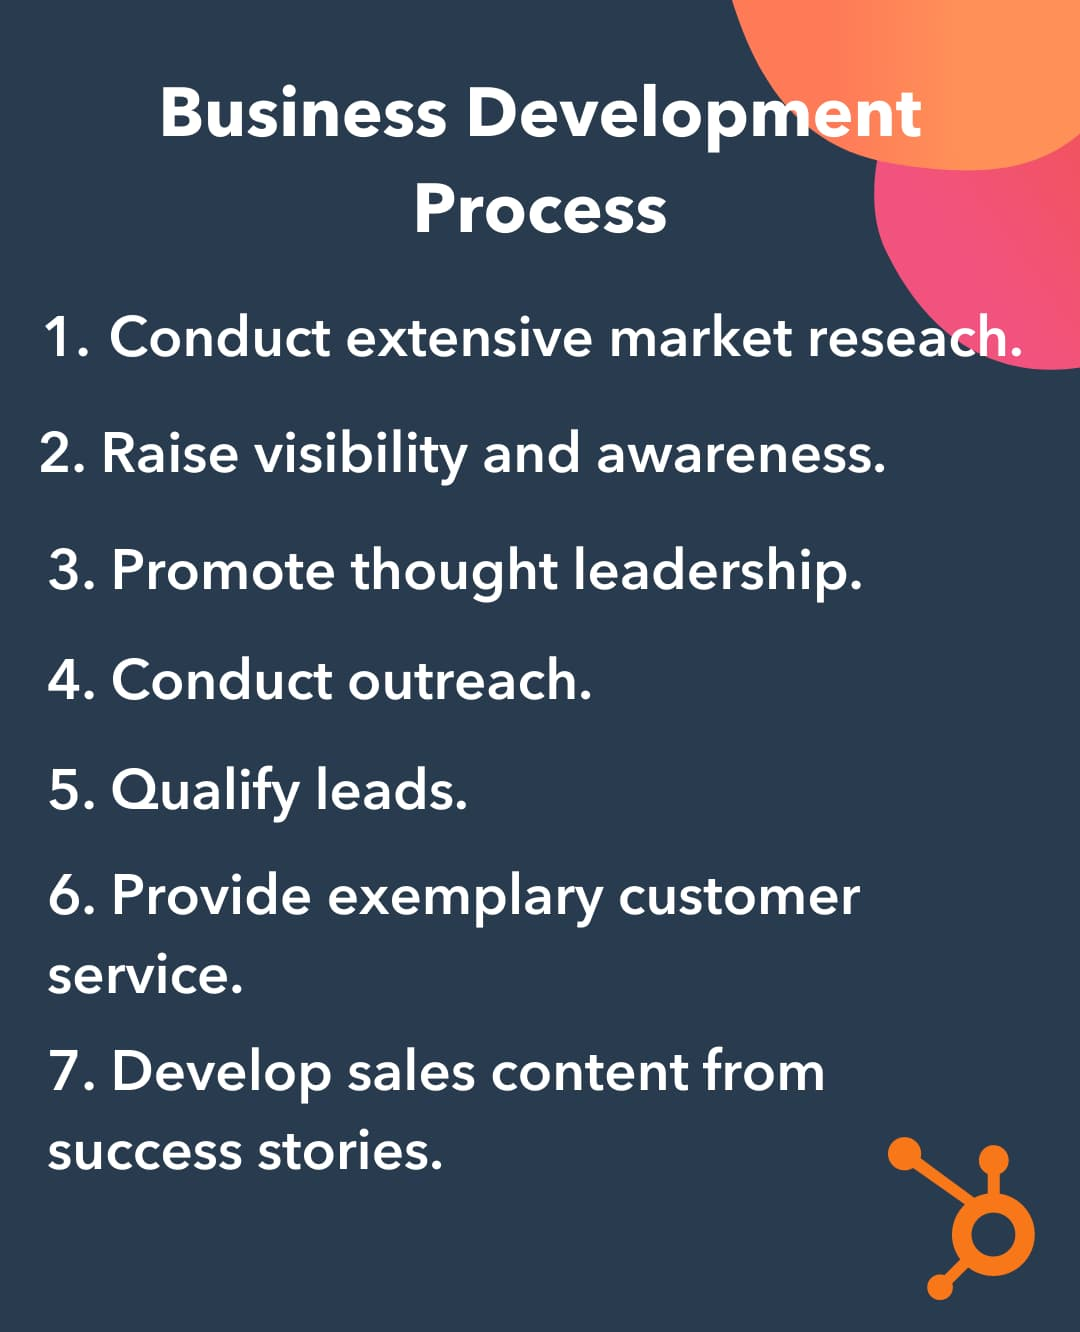 Visual of the 7 business development process/strategy stages